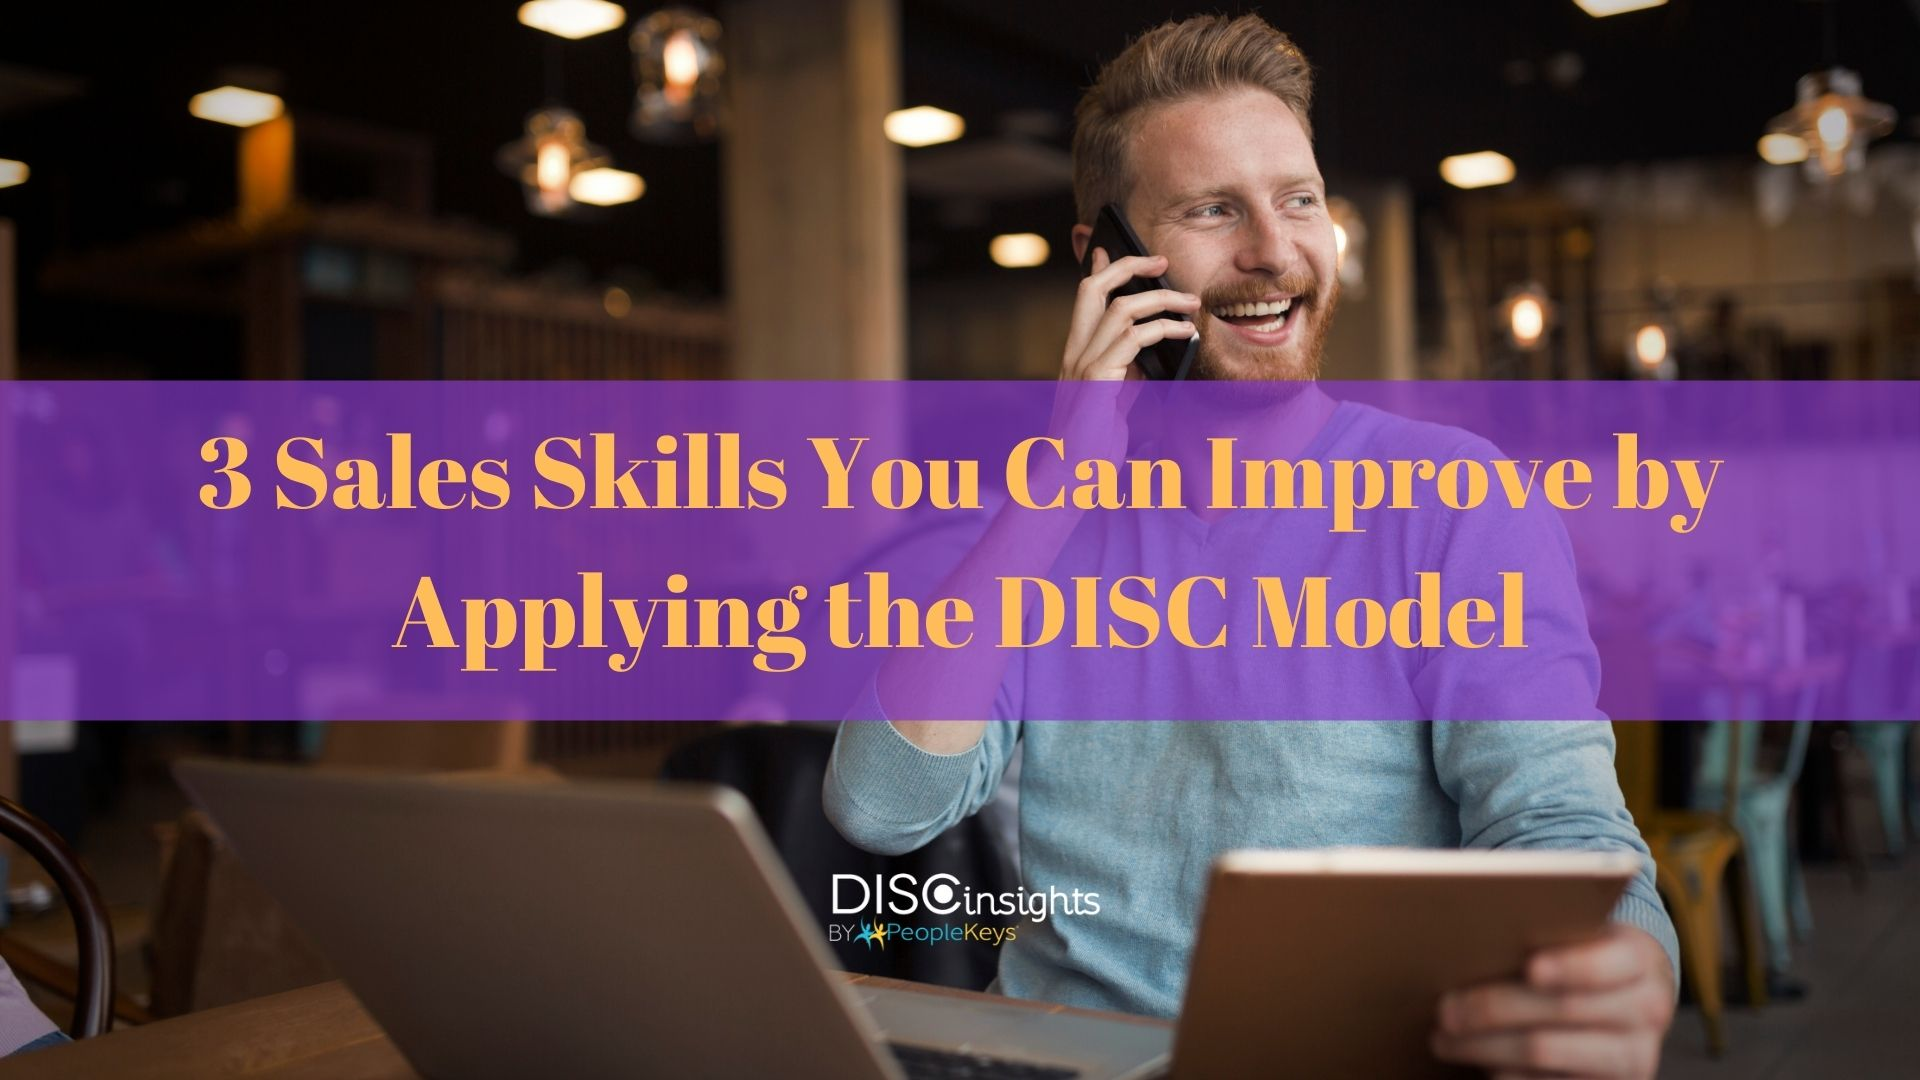 3 Sales Skills You Can Improve by Applying the DISC Model